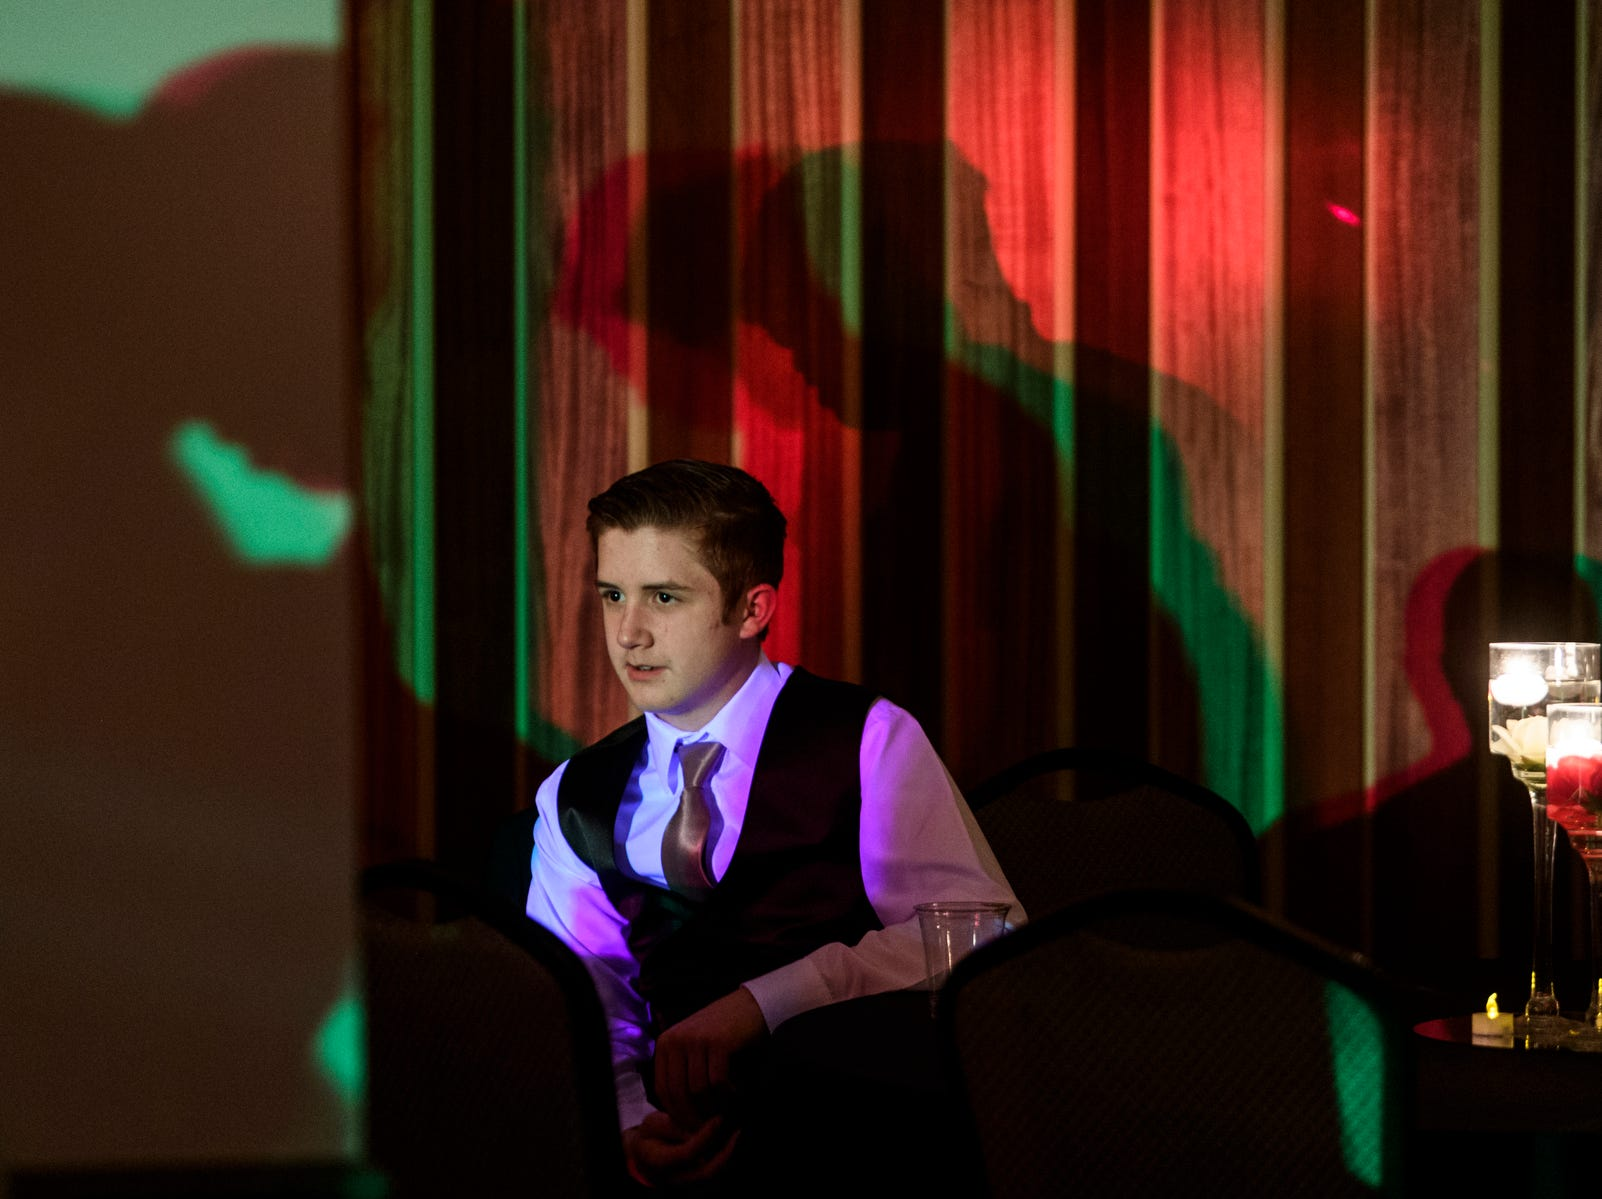 Colton Marvell takes a break to rest his feet as he watches other students dance during Evansville Day School's prom held at the Hadi Shrine Banquet Hall in downtown Evansville, Ind., Saturday, April 27, 2019.